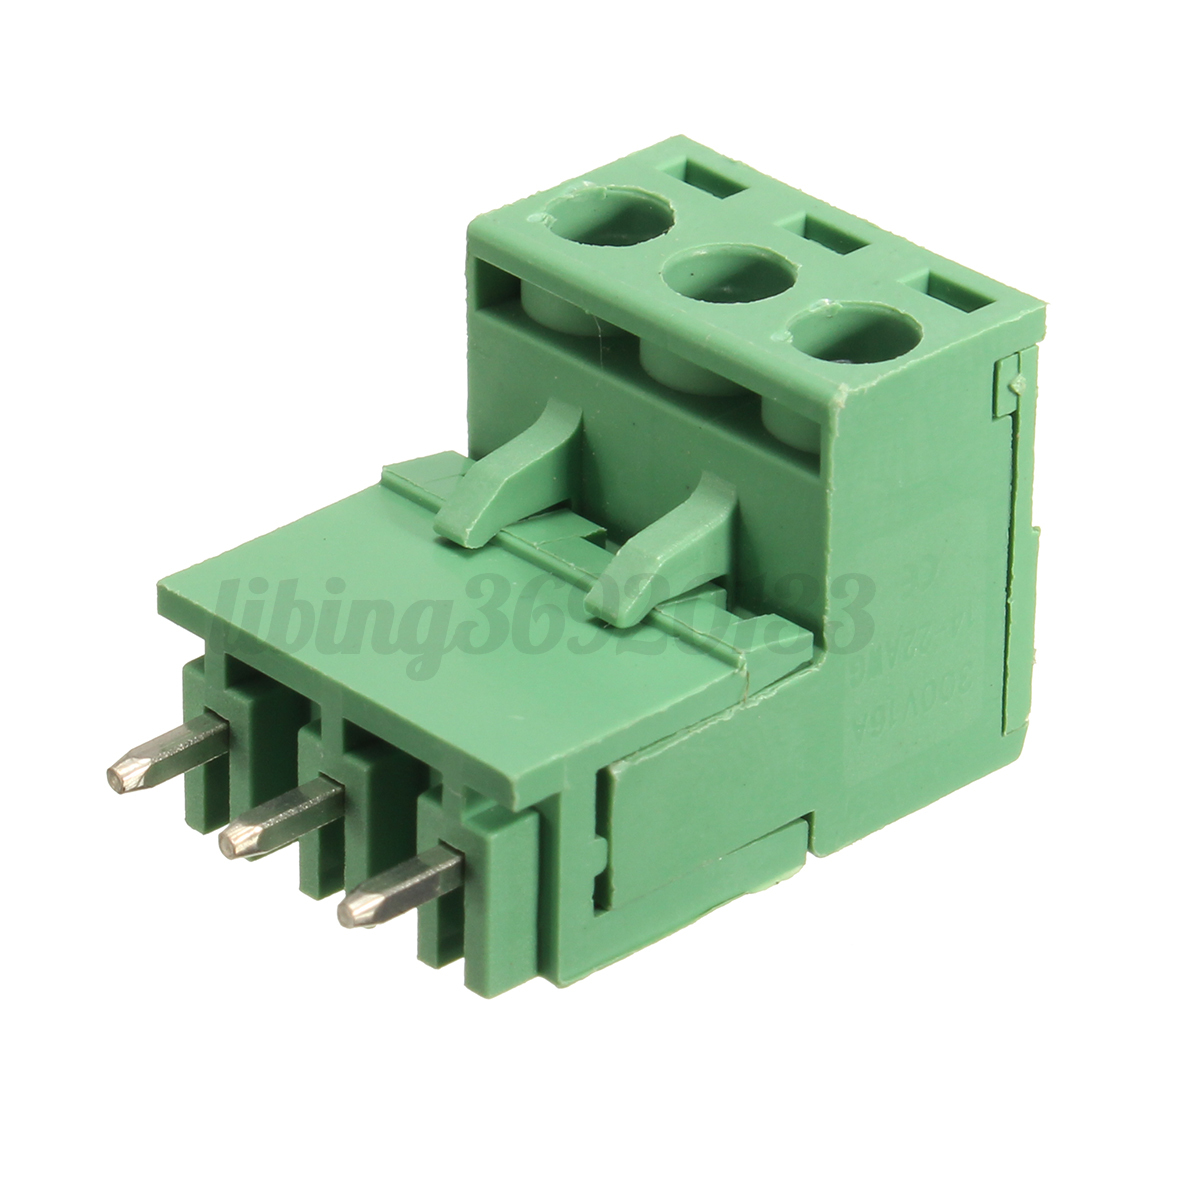 10Pcs-2EDG-5-08mm-Pitch-3Pin-Plug-in-Screw-Terminal-Block-Connector-Angulo-Recto